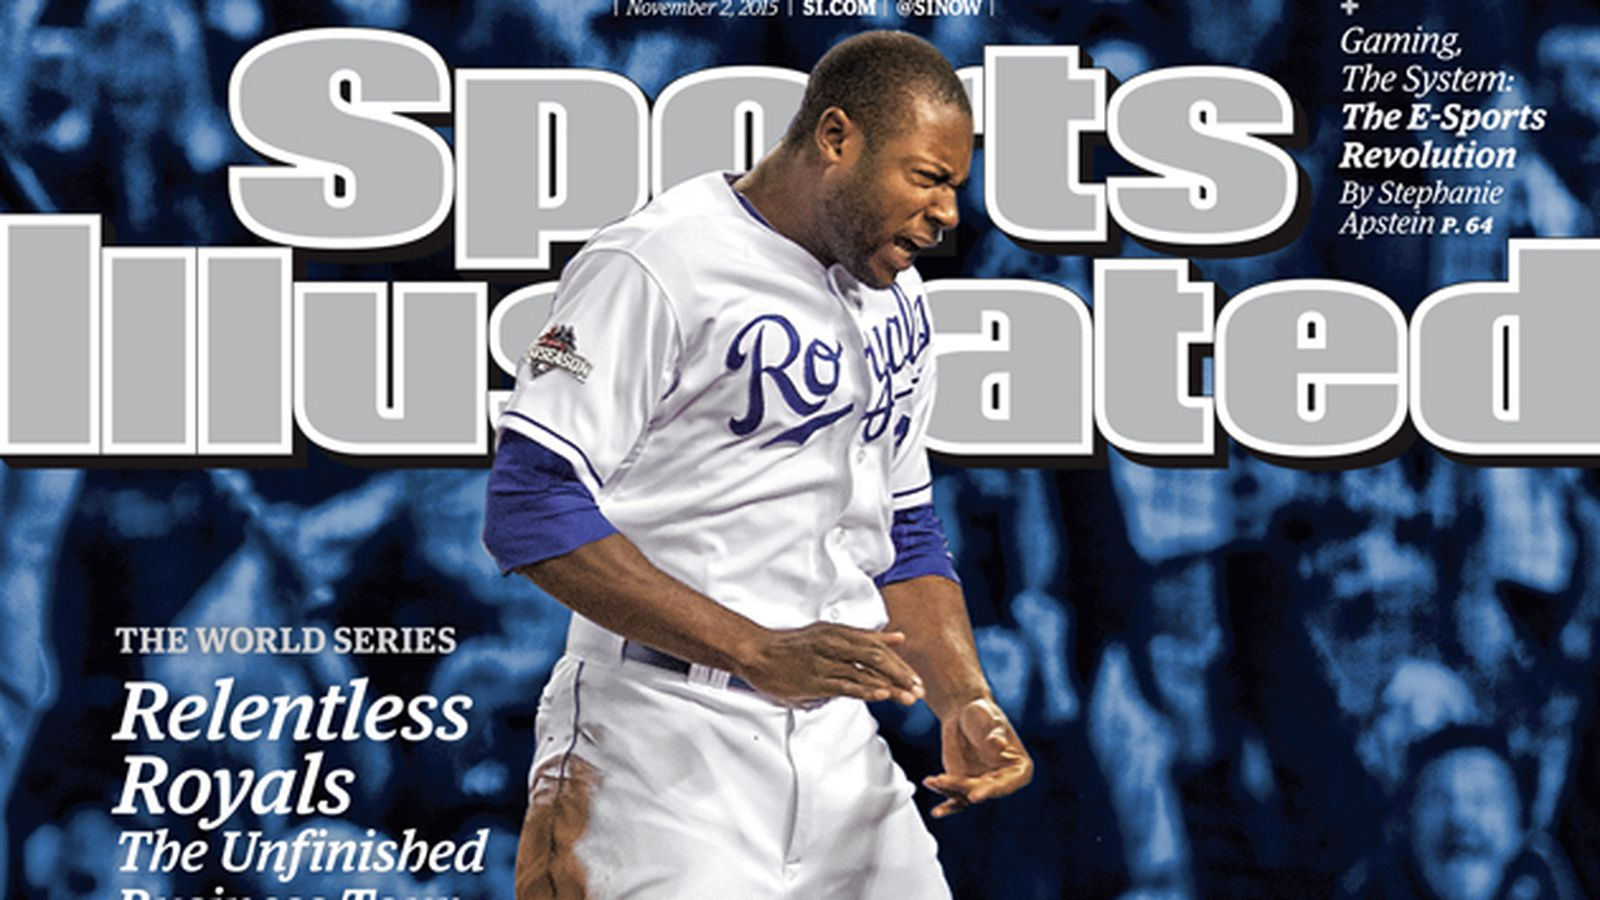 Lorenzo Cain on the regional cover of Sports Illustrated ...